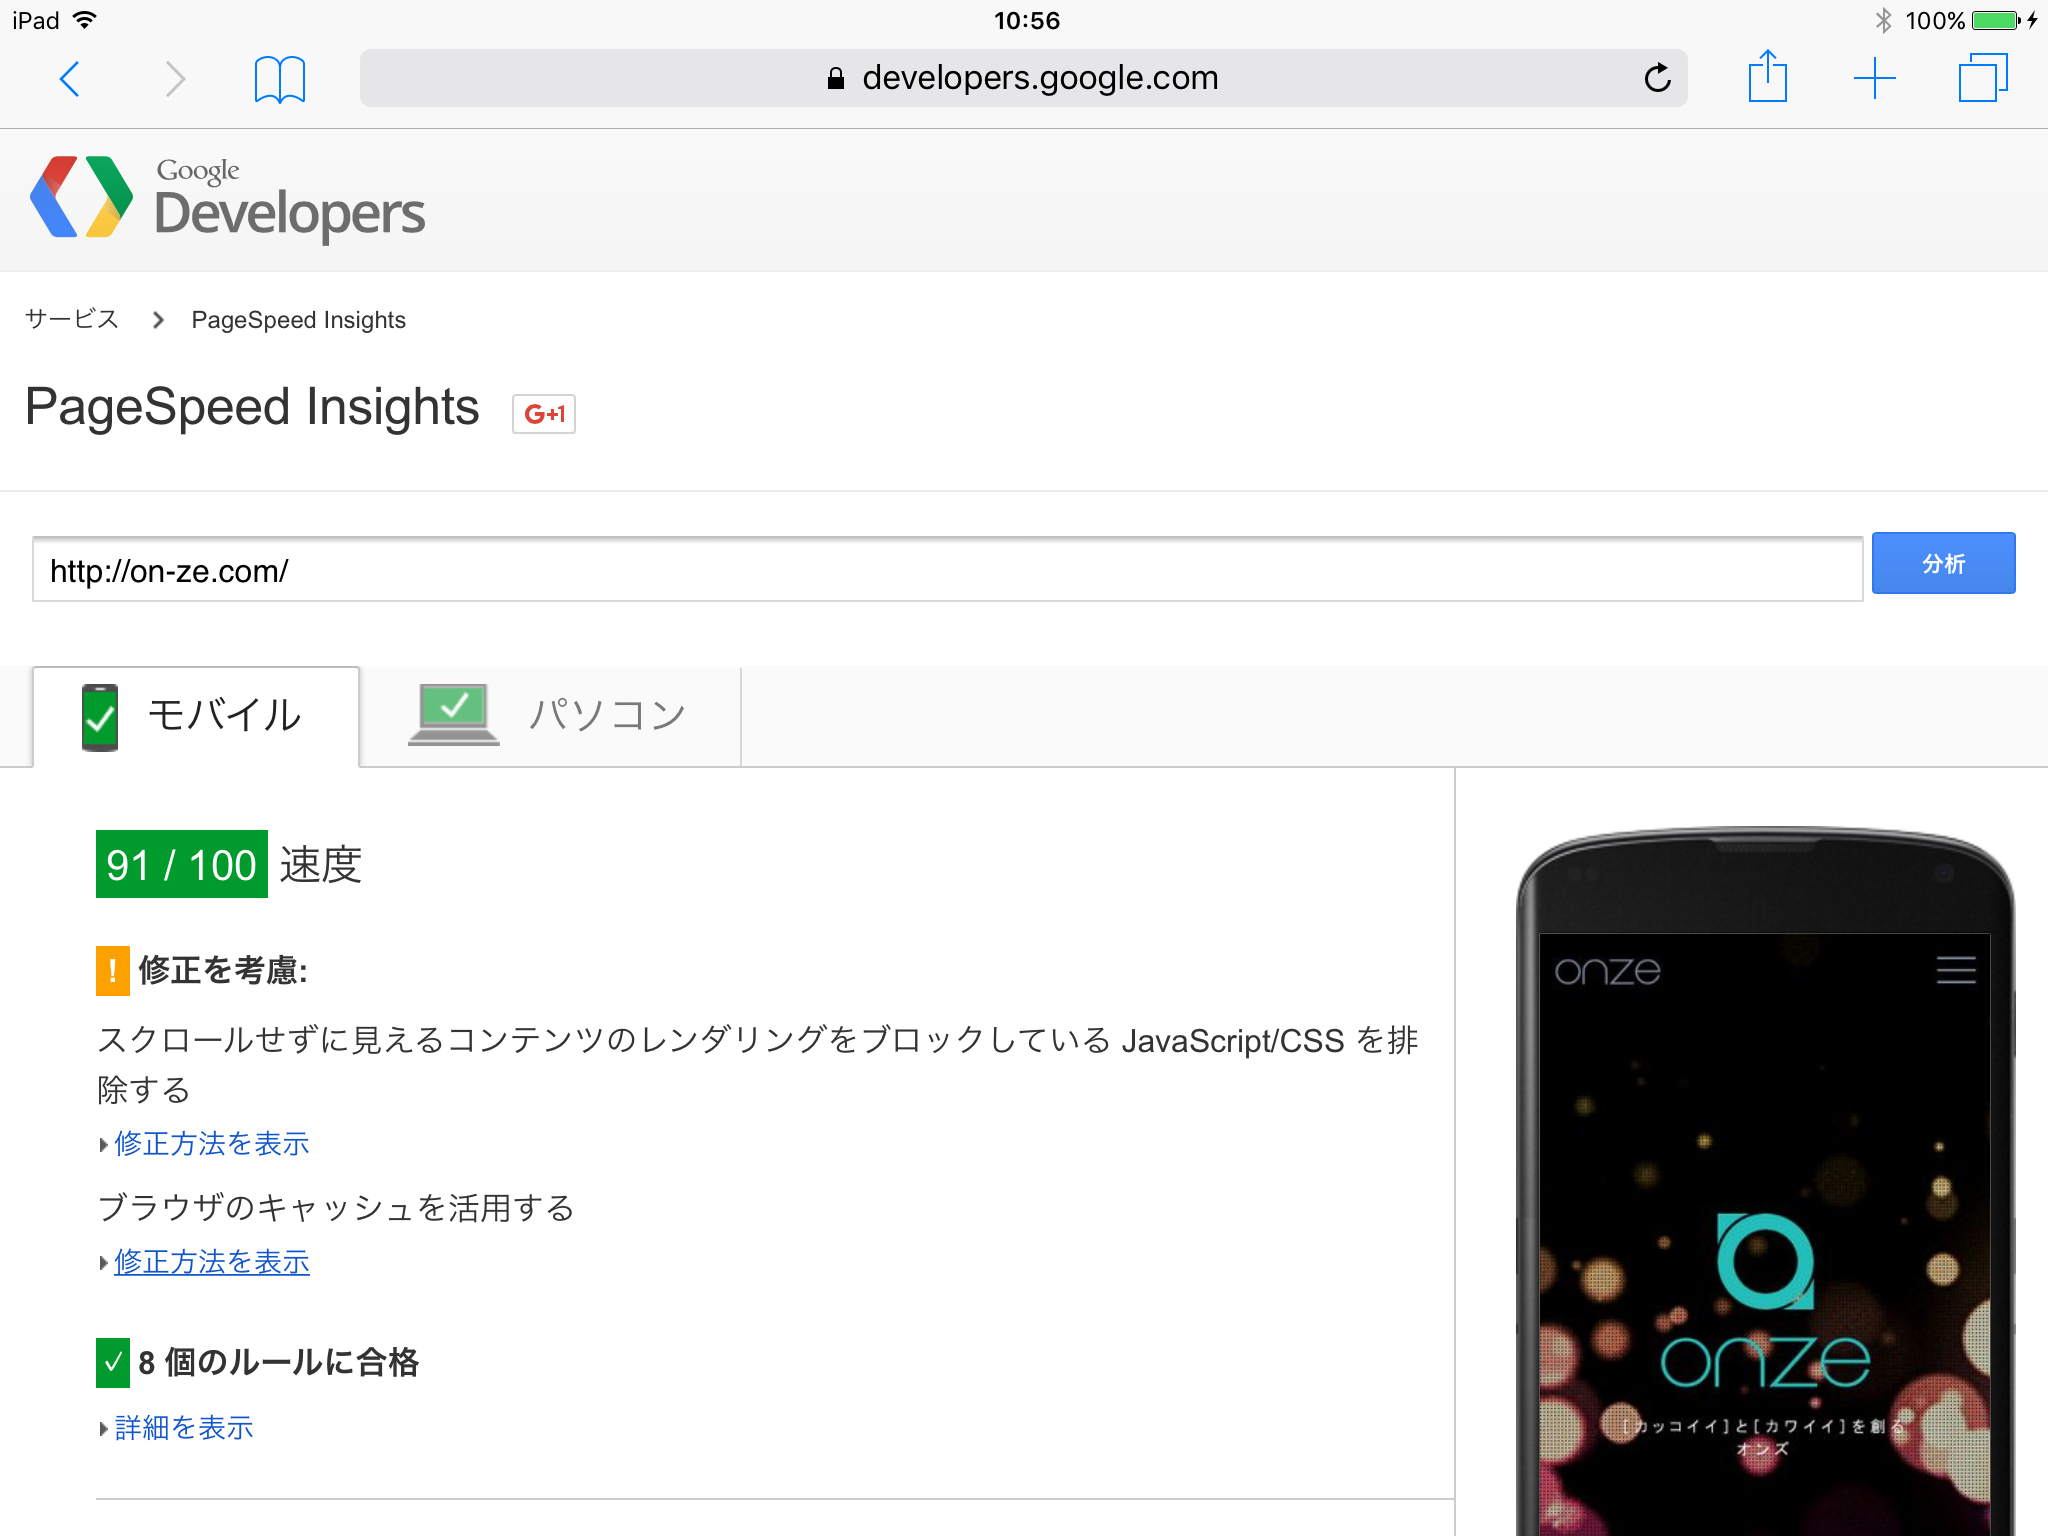 スピードテスト 01 : Google PageSpeed Insights